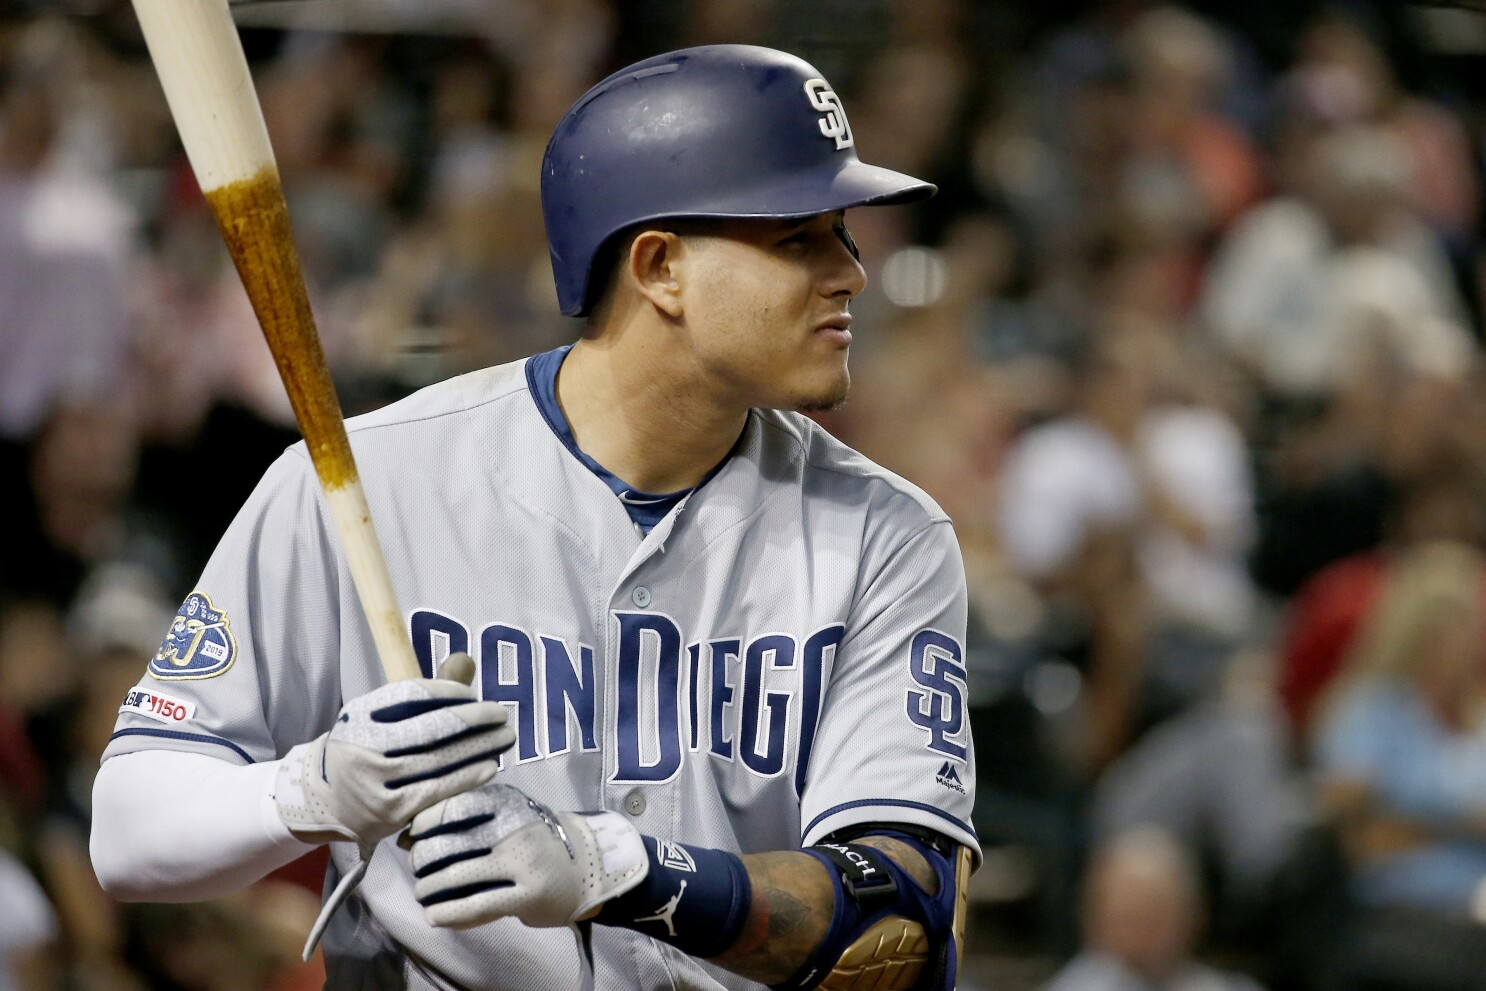 Manny Machado reflects on his disappointing season with Padres